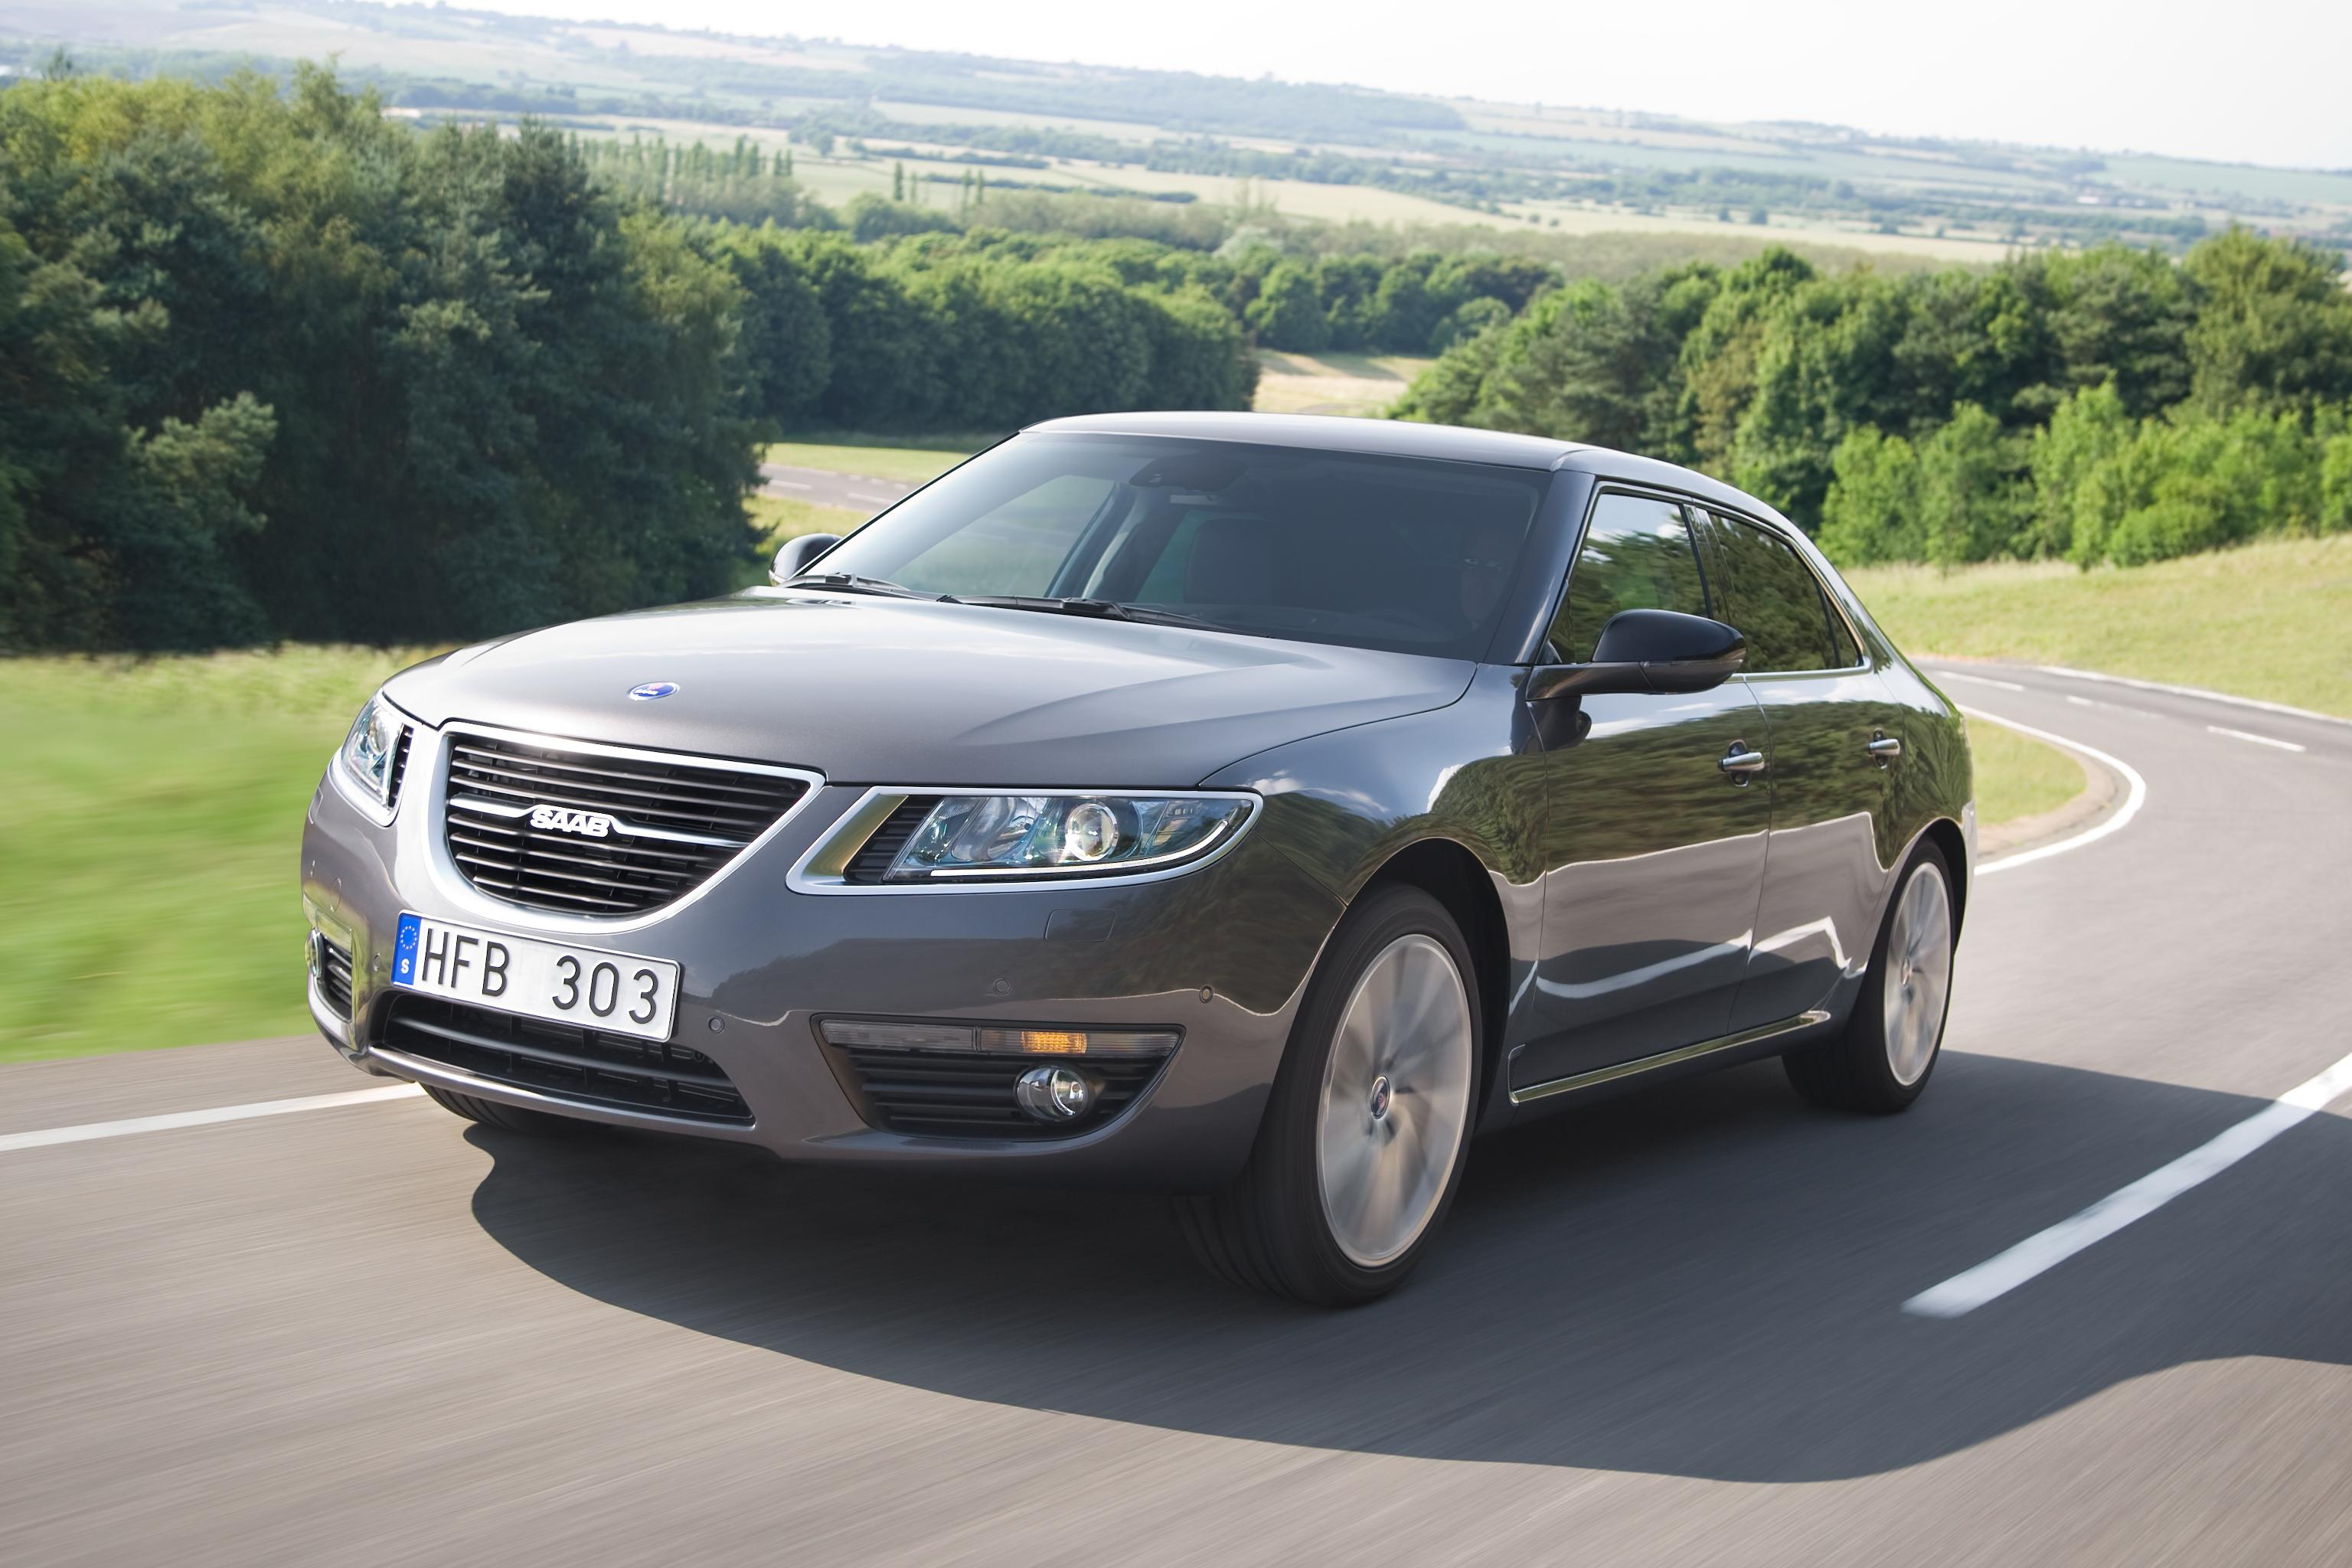 Live from the launch: Saab 9-5 on the road - AOL UK News